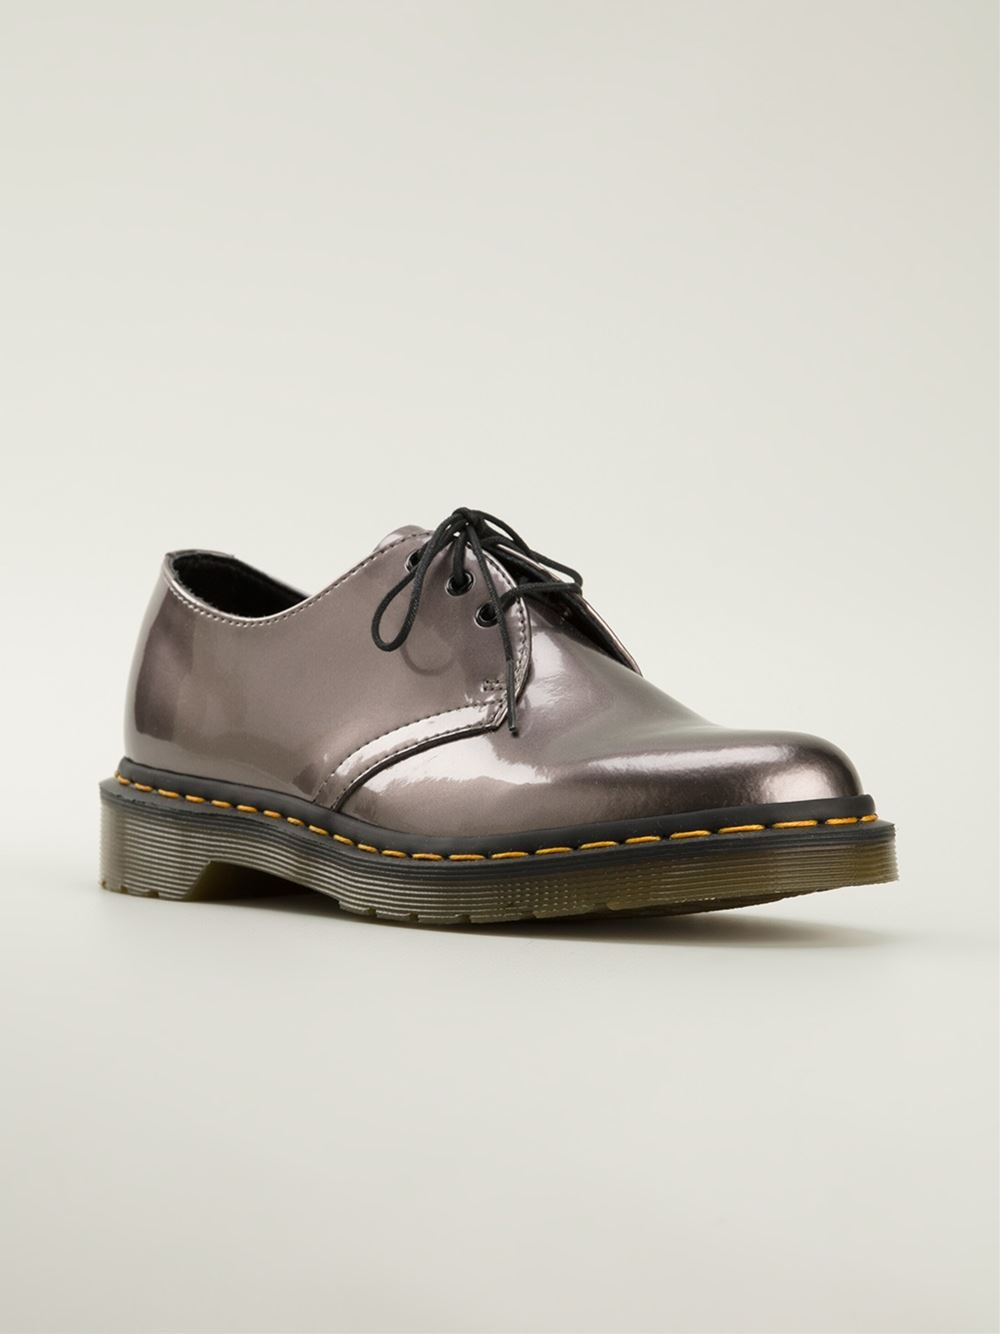 c407c5863b552 Dr. Martens '1460' Lace-Up Shoes in Metallic - Lyst